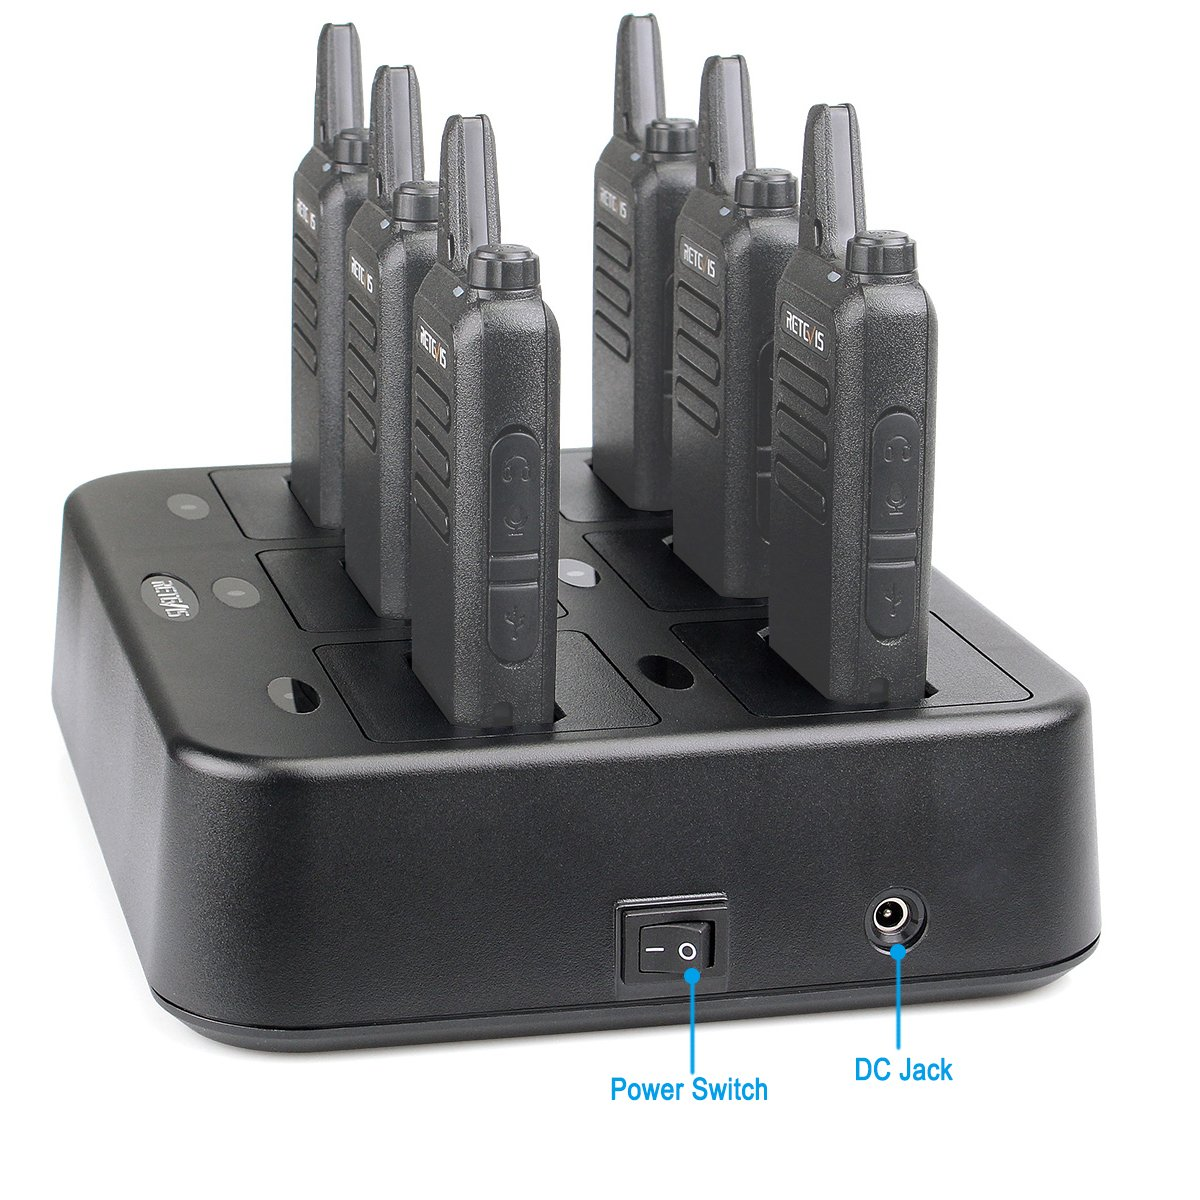 Retevis RT22 Six-Way Charger Multi Unit Charger for Retevis RT22 Walkie Talkie and Battery (1 Pack) by Retevis (Image #3)